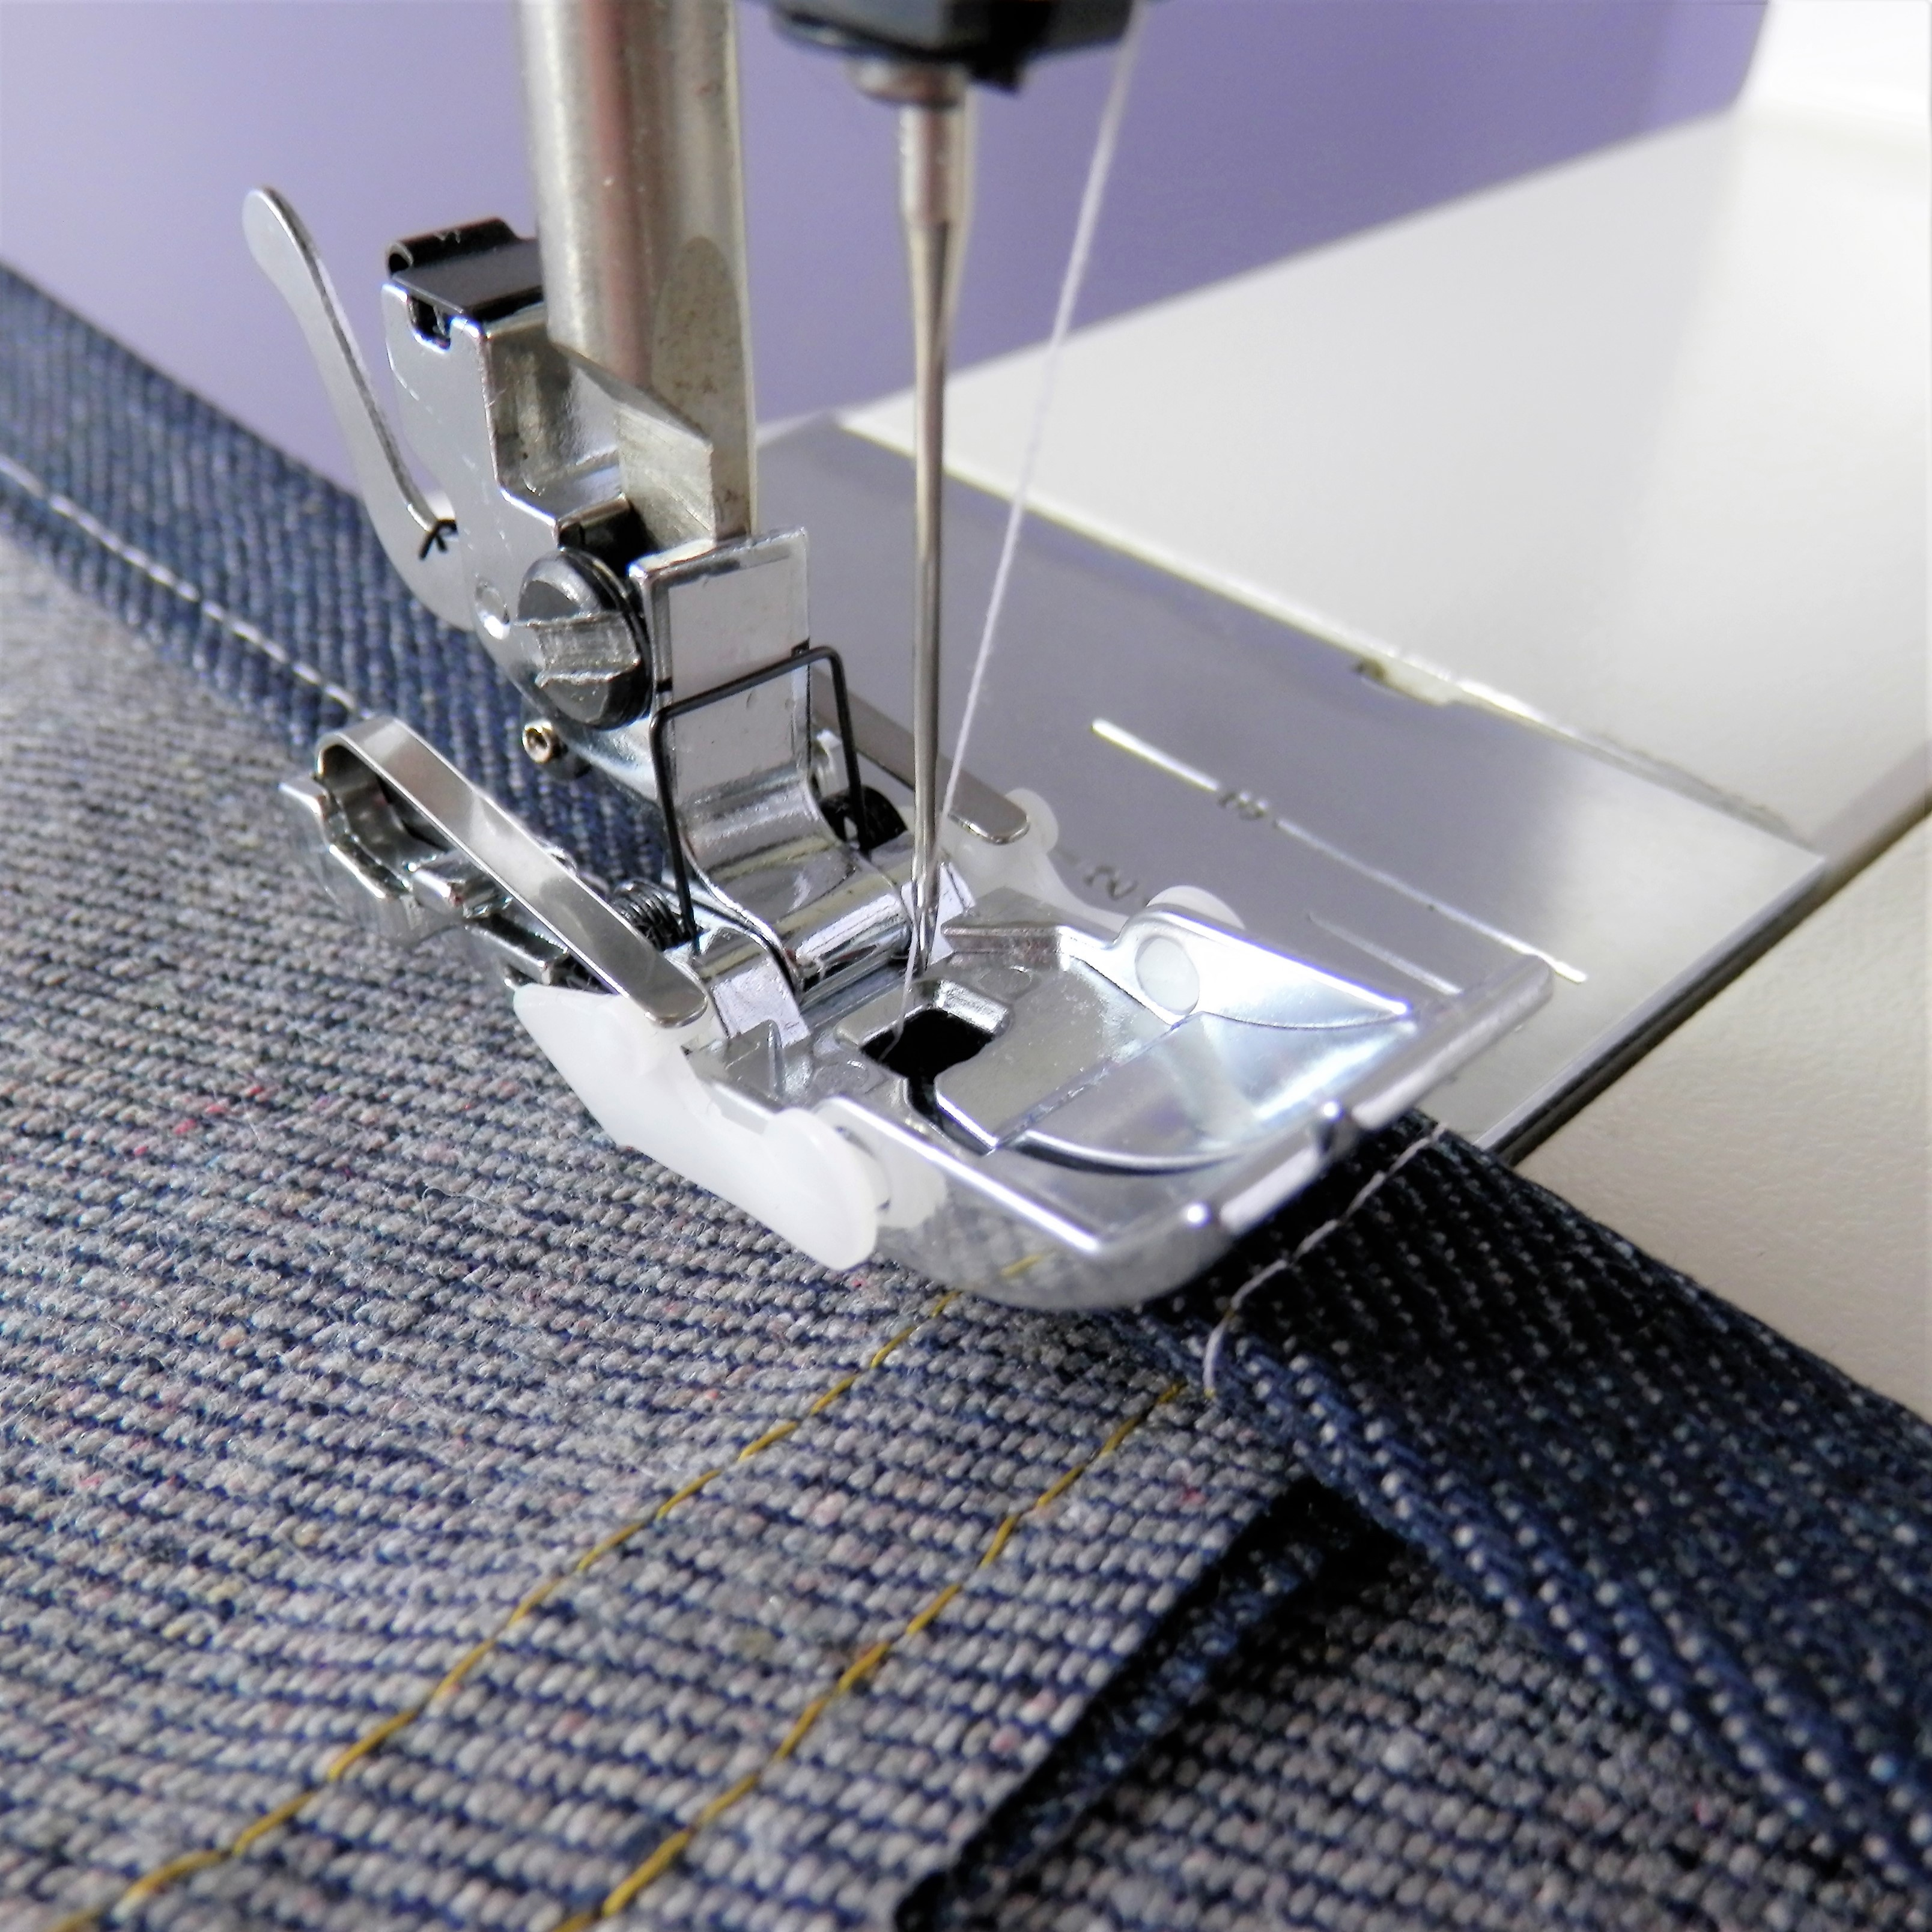 Janome, Elna, Kenmore Magic Jeans Hemming Foot